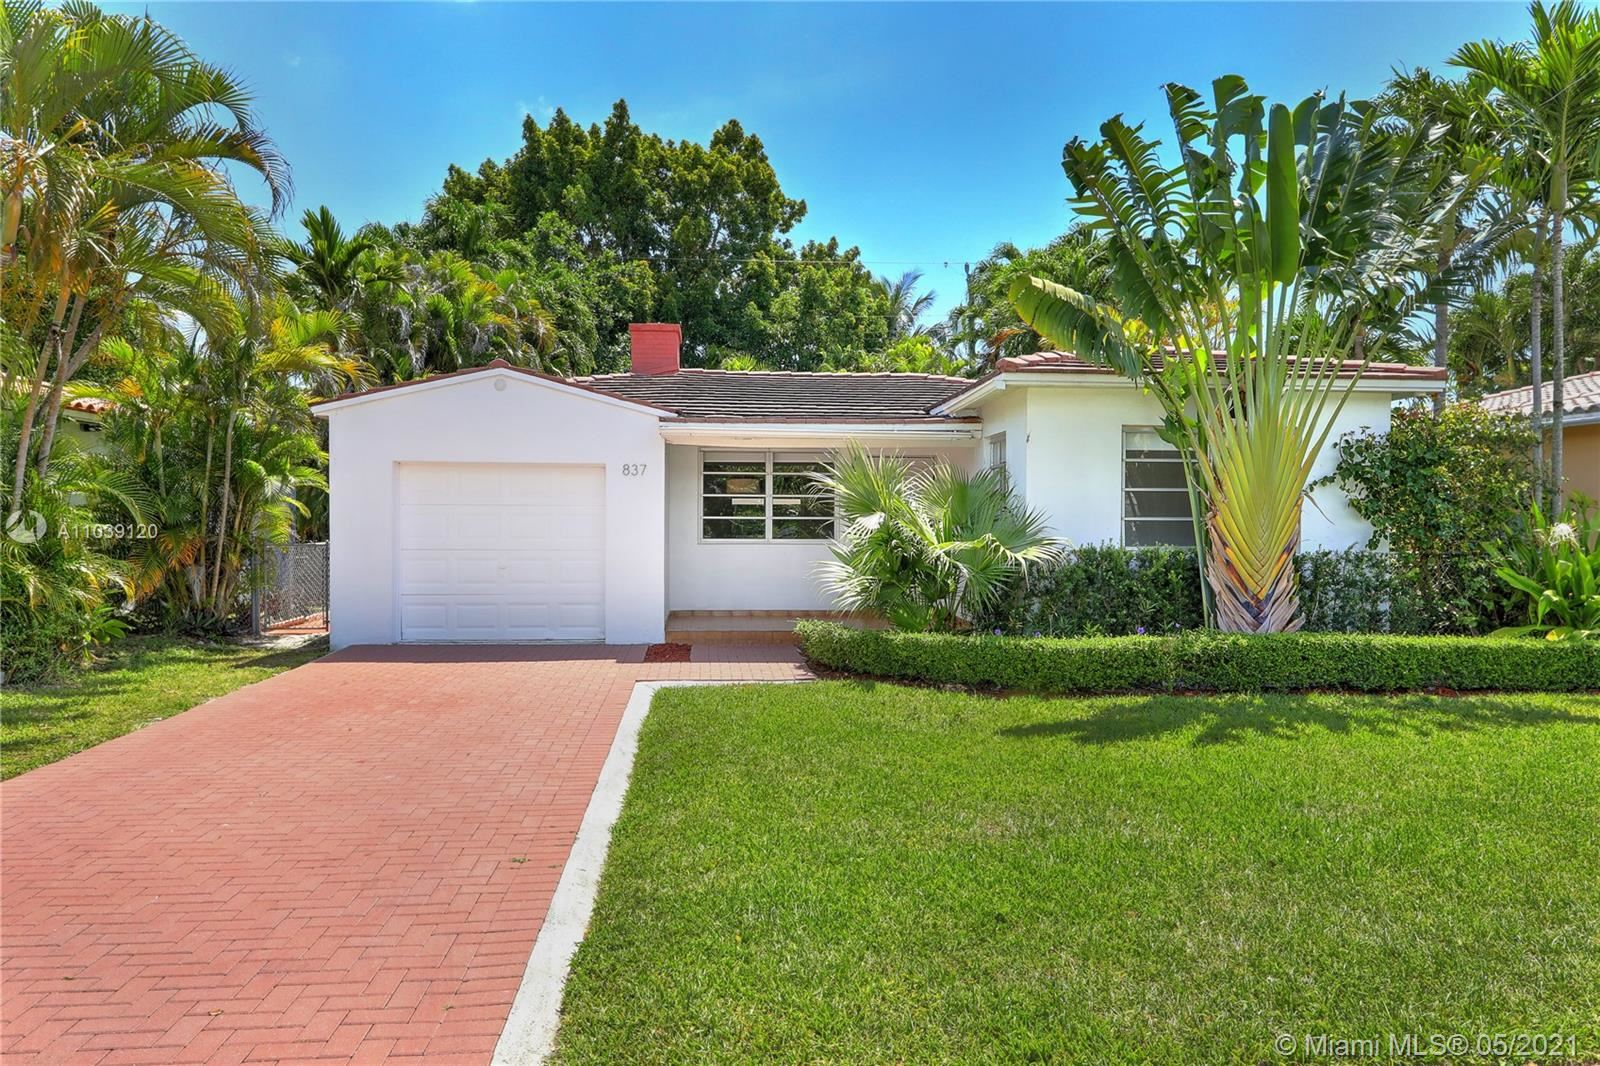 Photo of 837 Tangier St, Coral Gables, FL 33134 (MLS # A11039120)